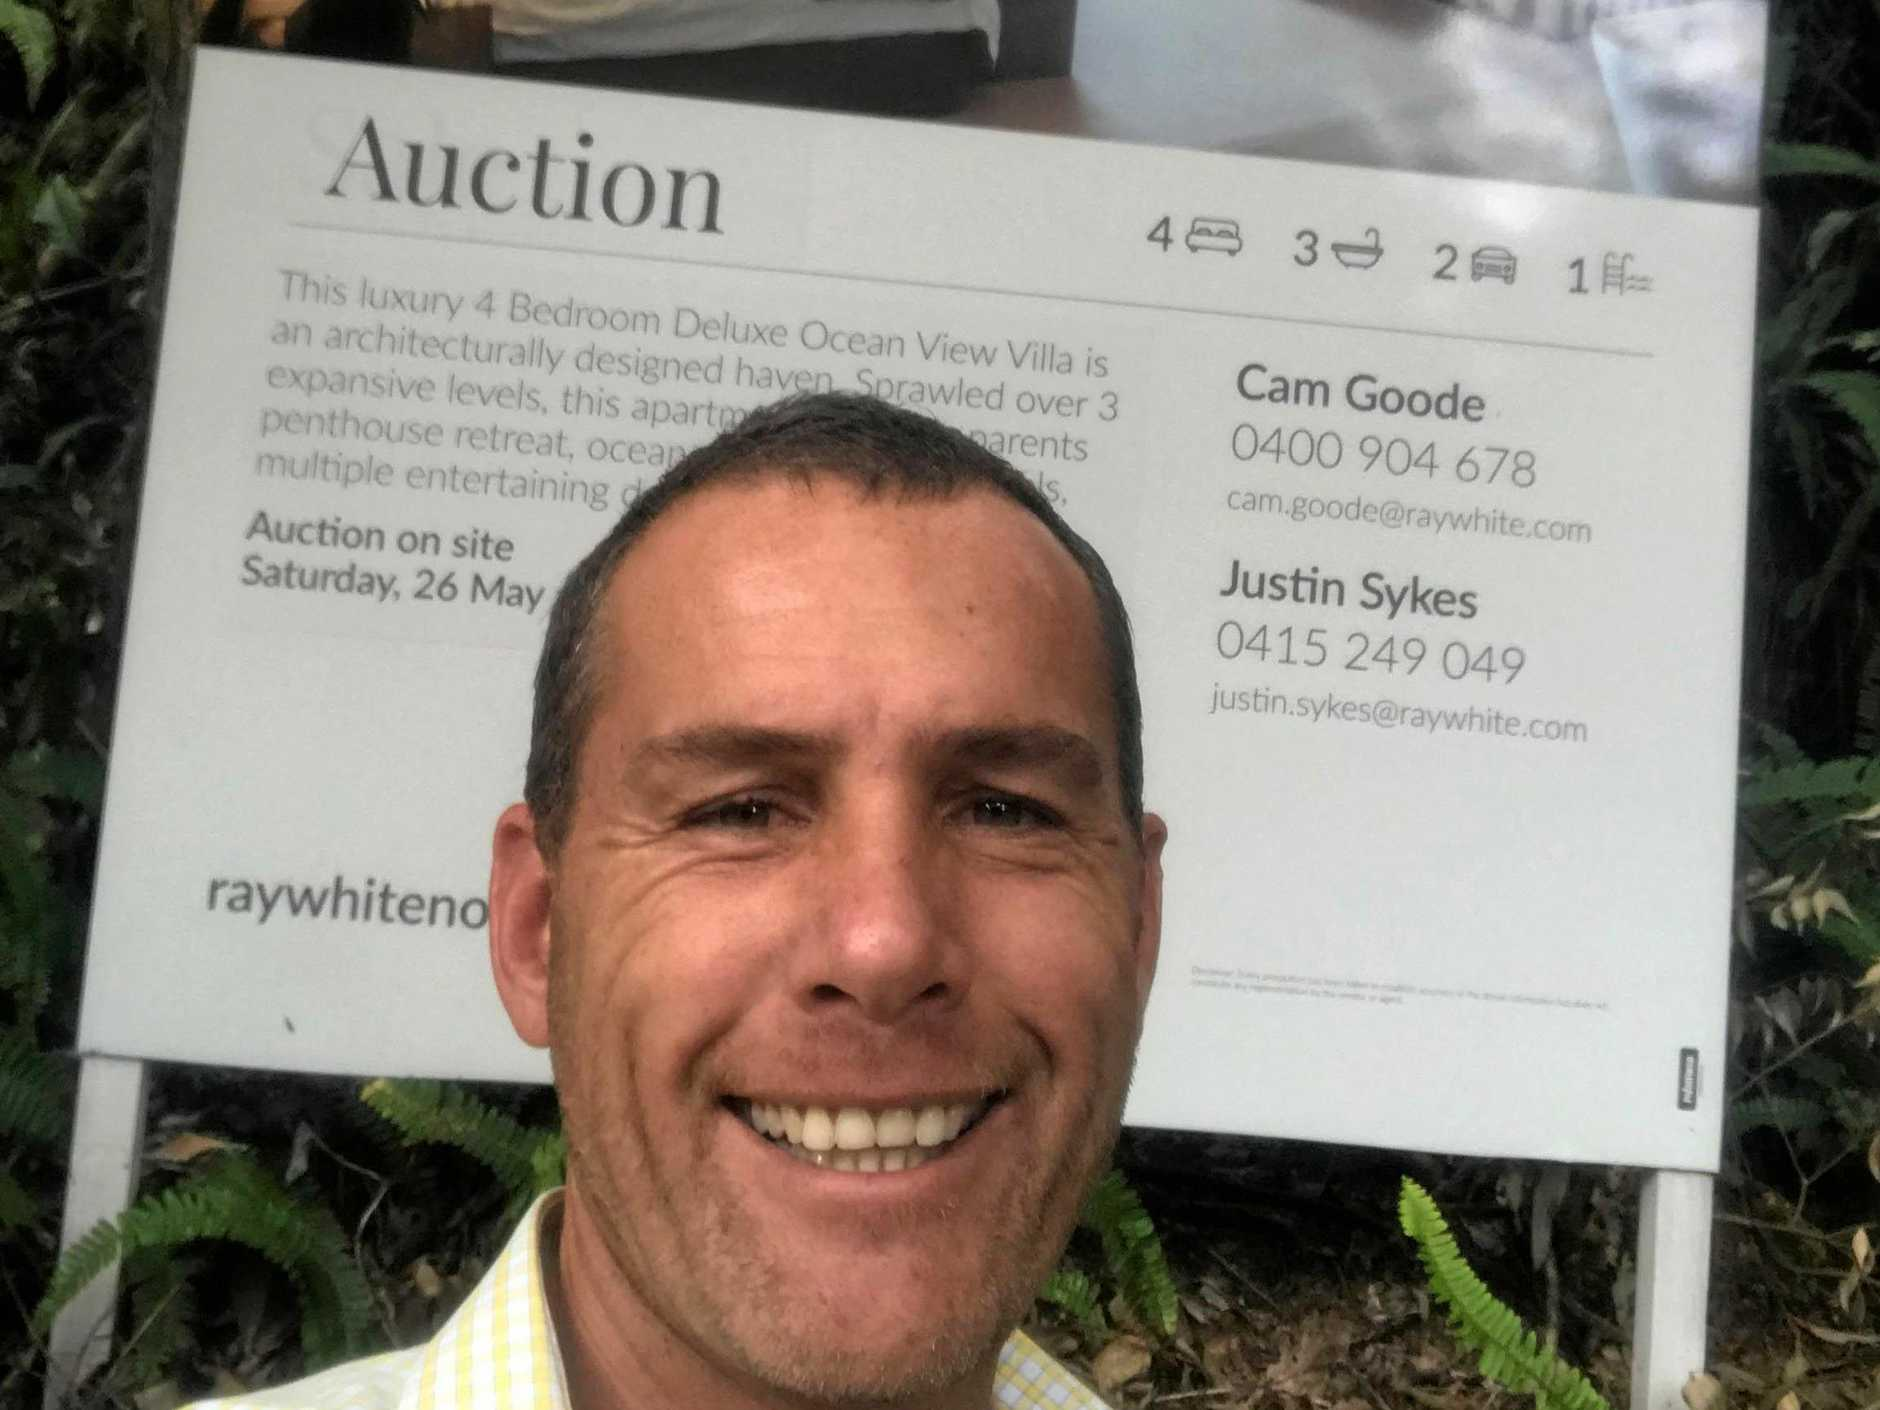 Cam Goode of Ray White Noosa at Villa 2111 Peppers Resort, Noosa Heads, that sold prior to auction.